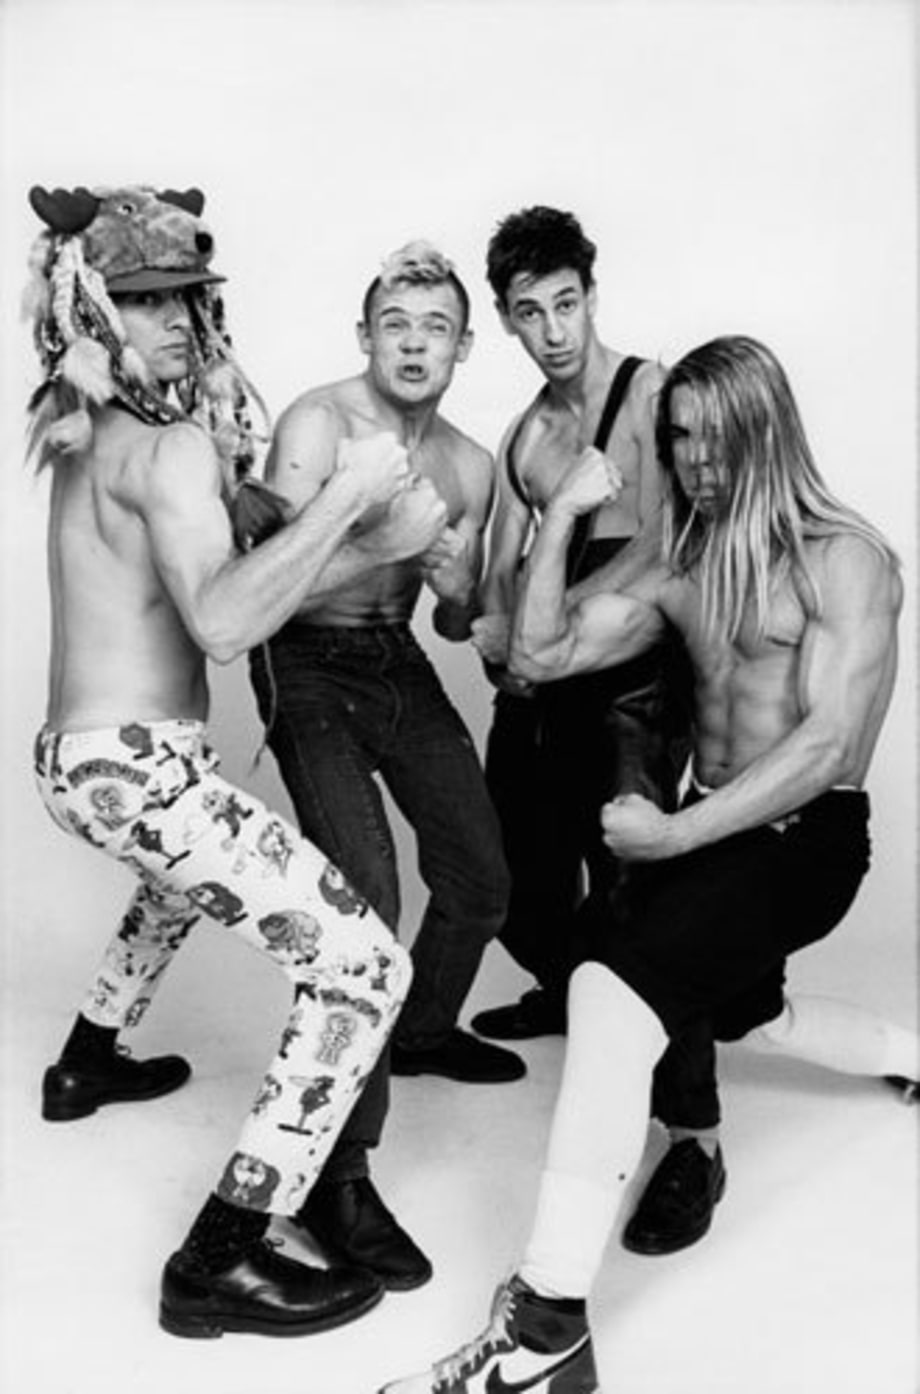 'The Red Hot Chili Peppers: An Oral/Visual History by the Red Hot Chili Peppers'